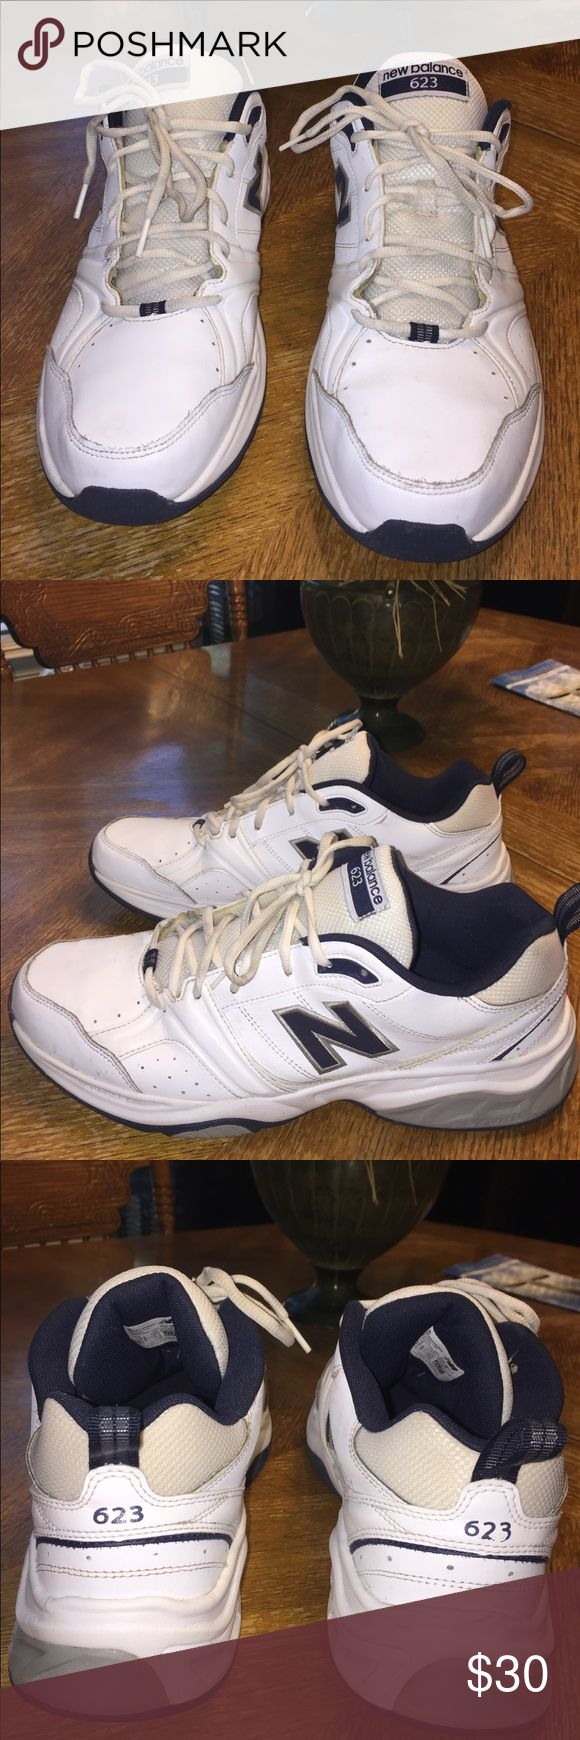 Almost New New Balance #623 Sneakers Size 13   Almost New New Balance 623 Sneakers. ( They are not a wide width) New Balance Shoes Sneakers